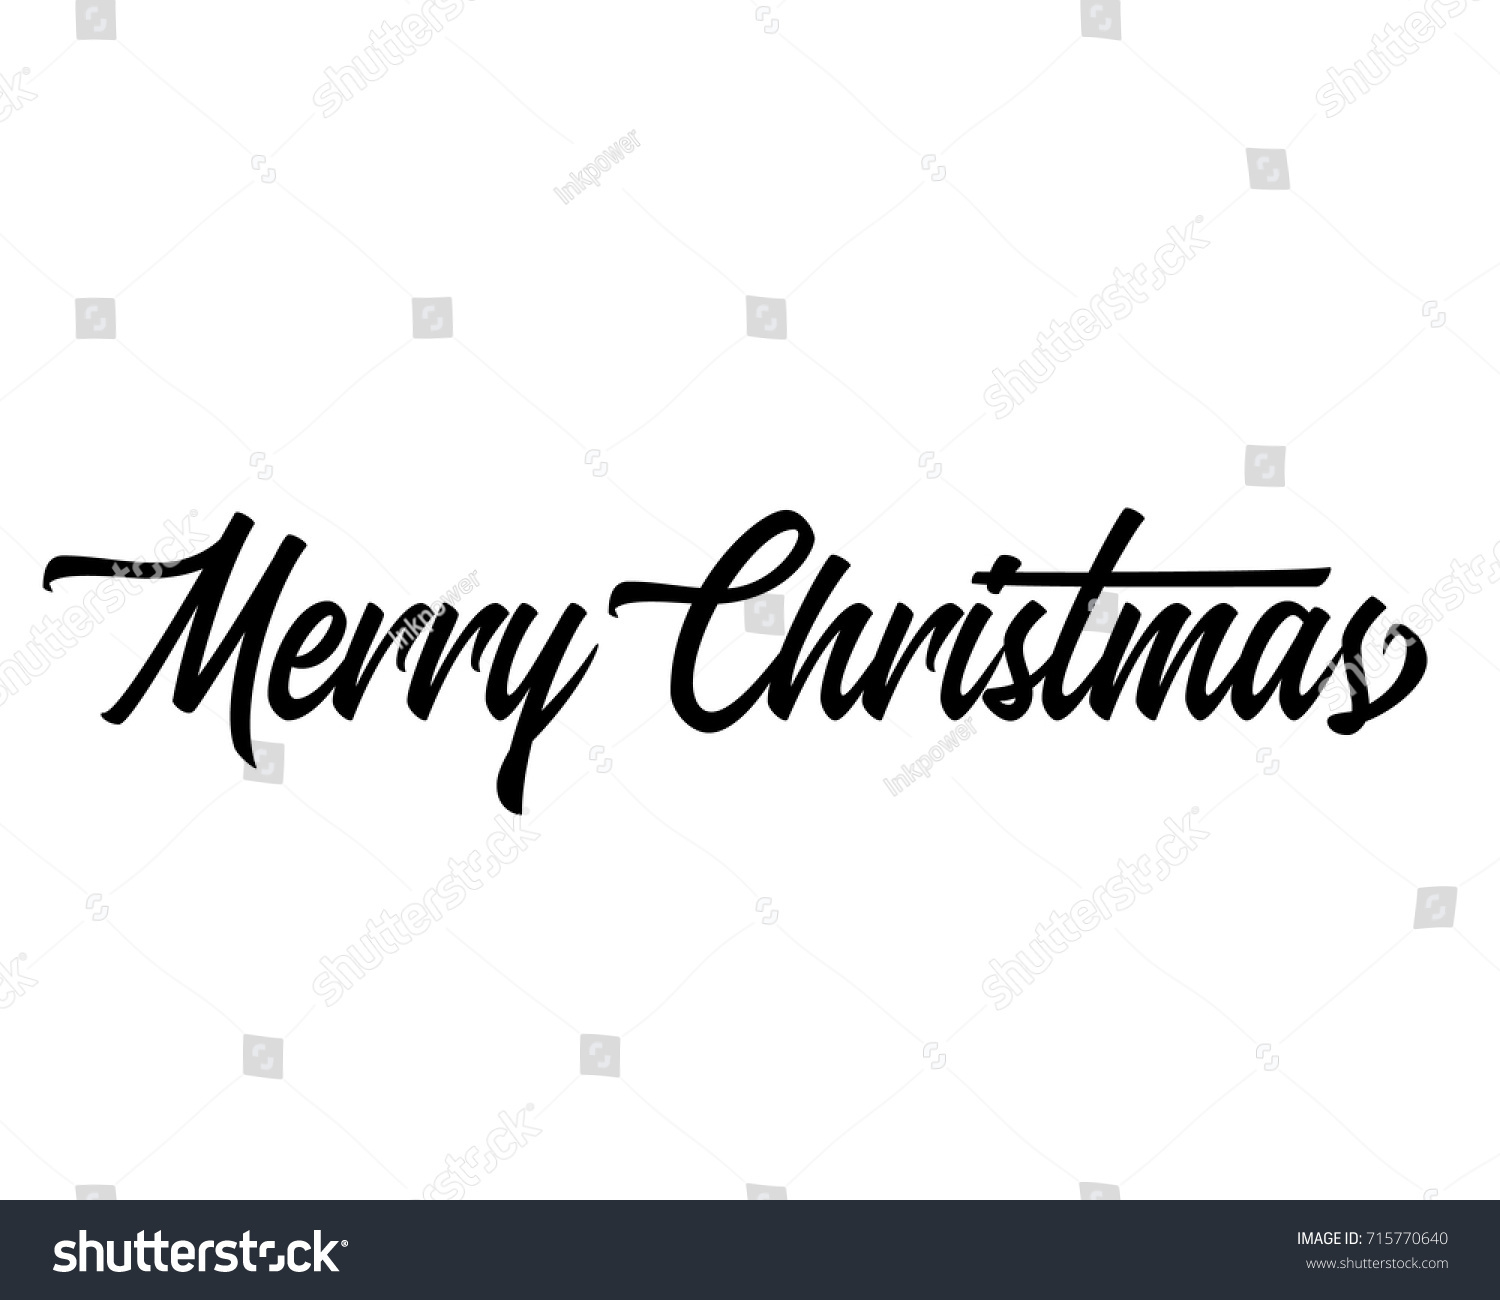 Single Line Word Art : Christmas related script phrase word art stock vector